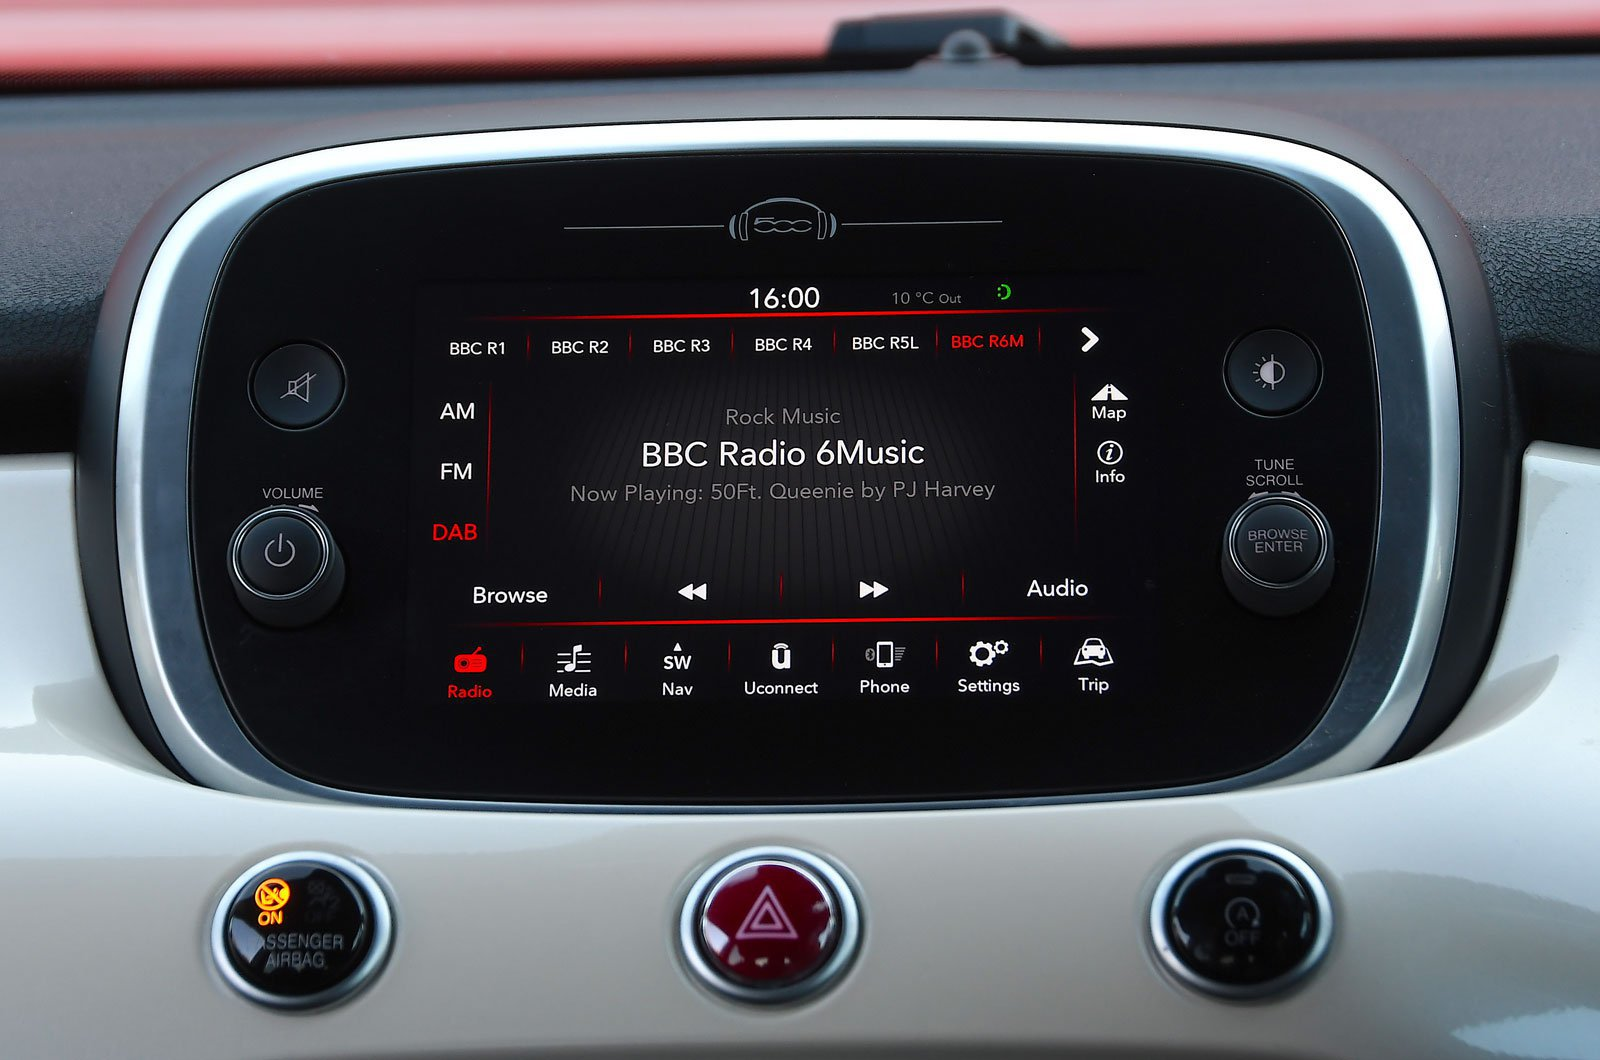 Fiat infotainment screen